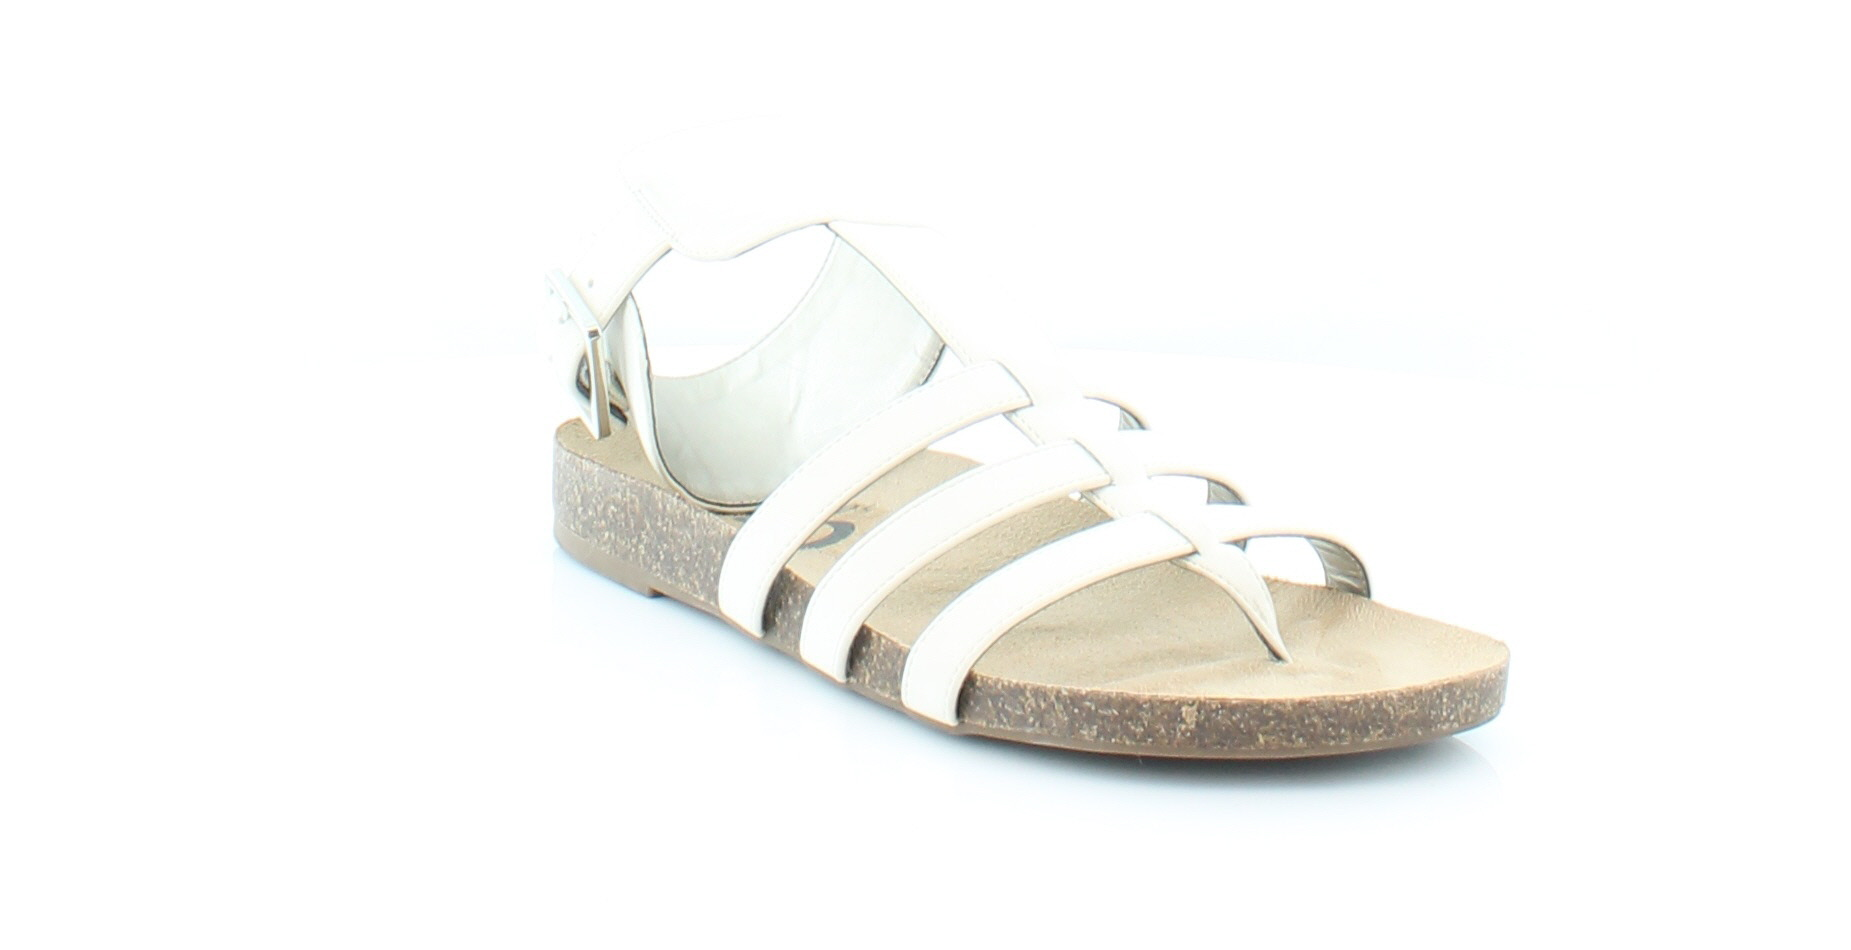 ca402bb2c Circus by Sam Edelman Katie Ivory Womens Shoes Size 7.5 M Sandals MSRP  59